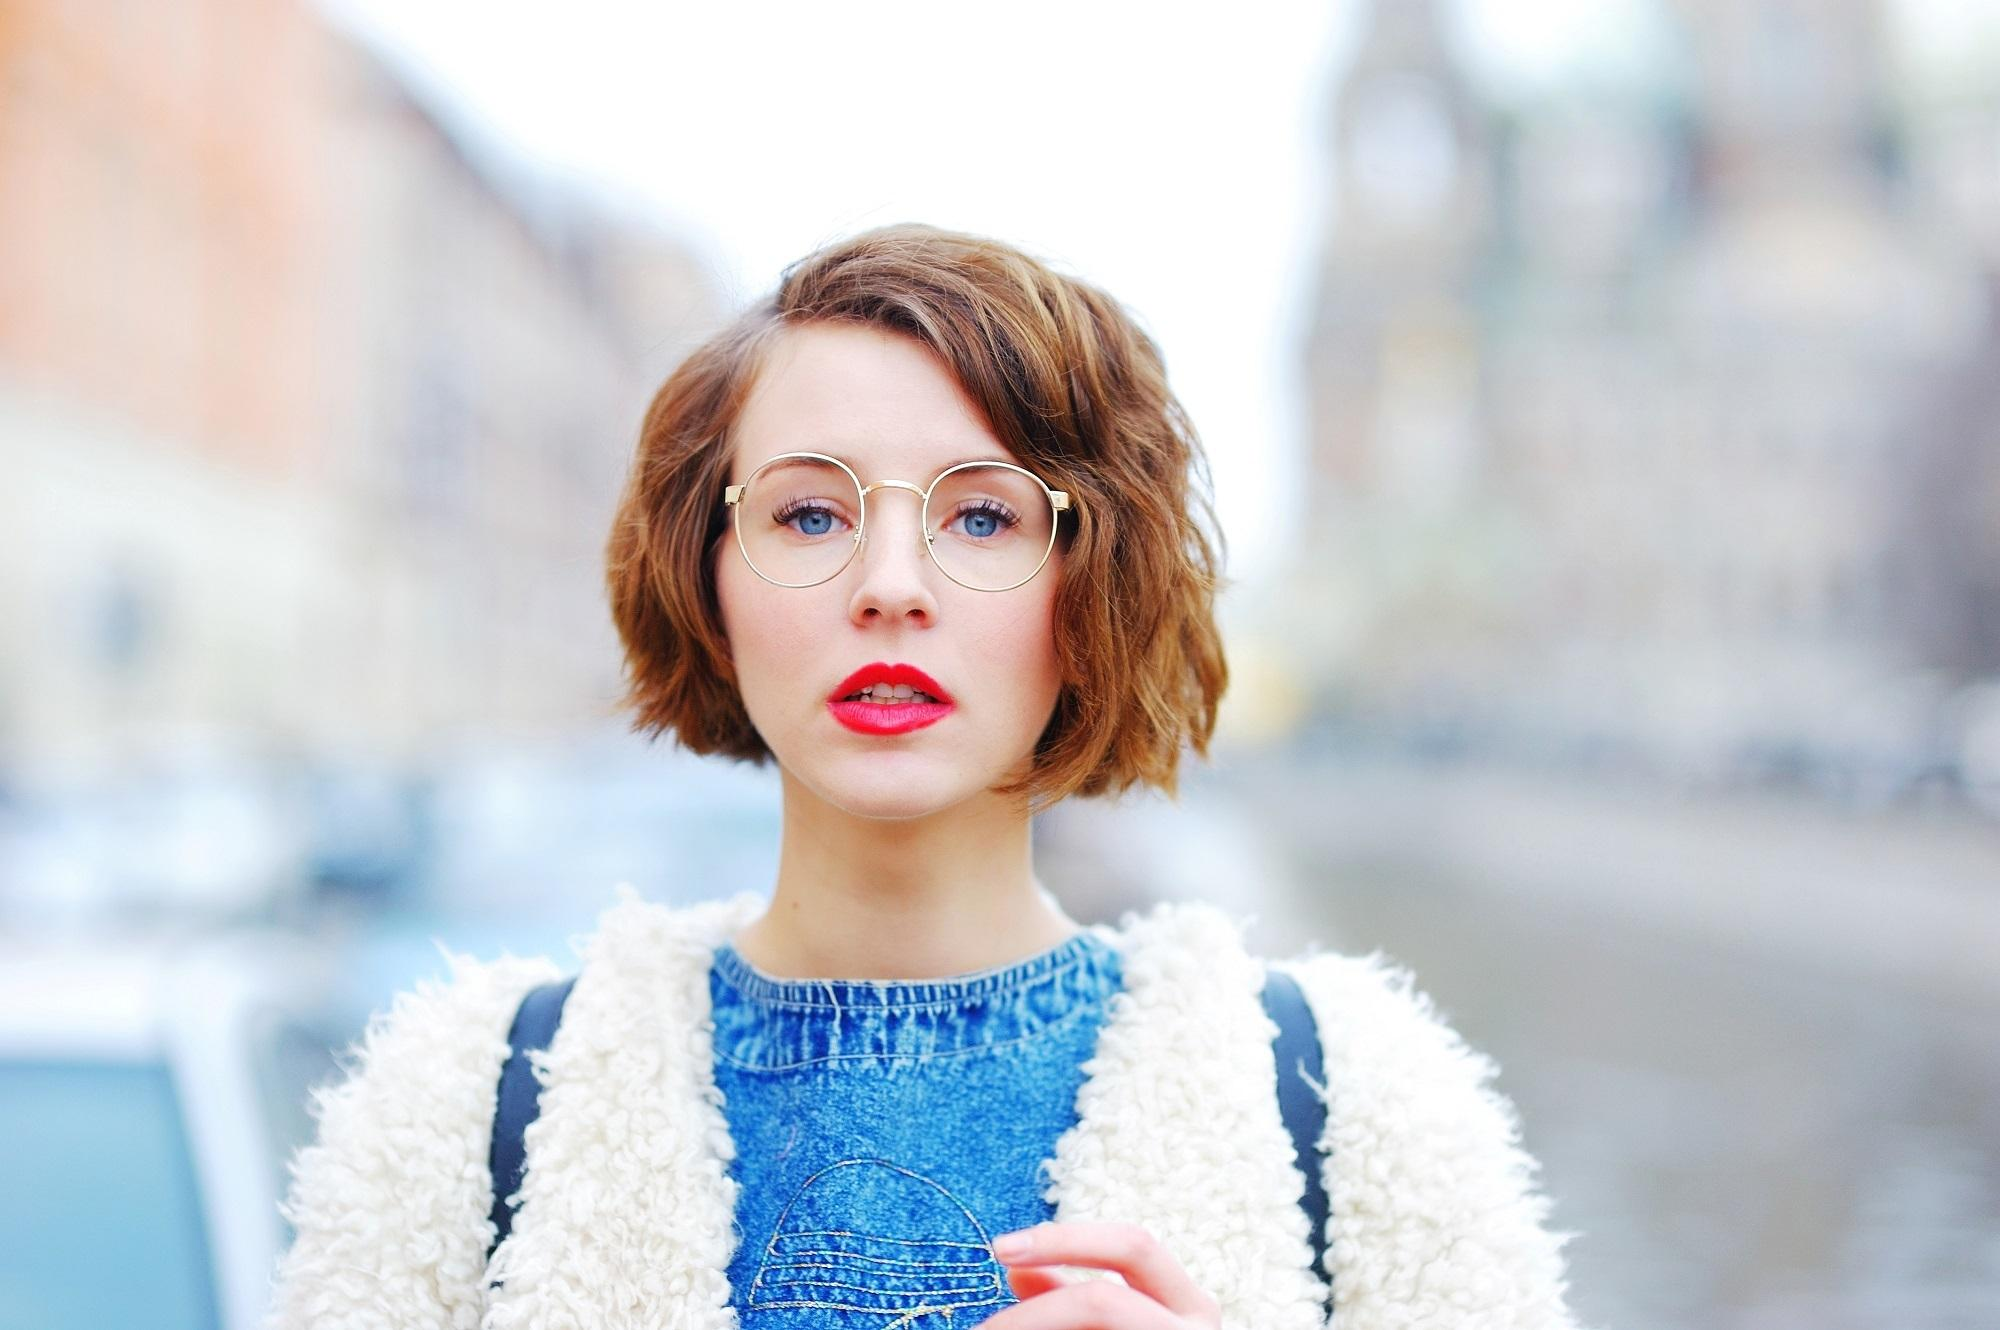 Chin length hairstyles: Closeup shot in outdoor location of a woman wearing white jacket and blue shirt with brown wavy bob and eye glasses